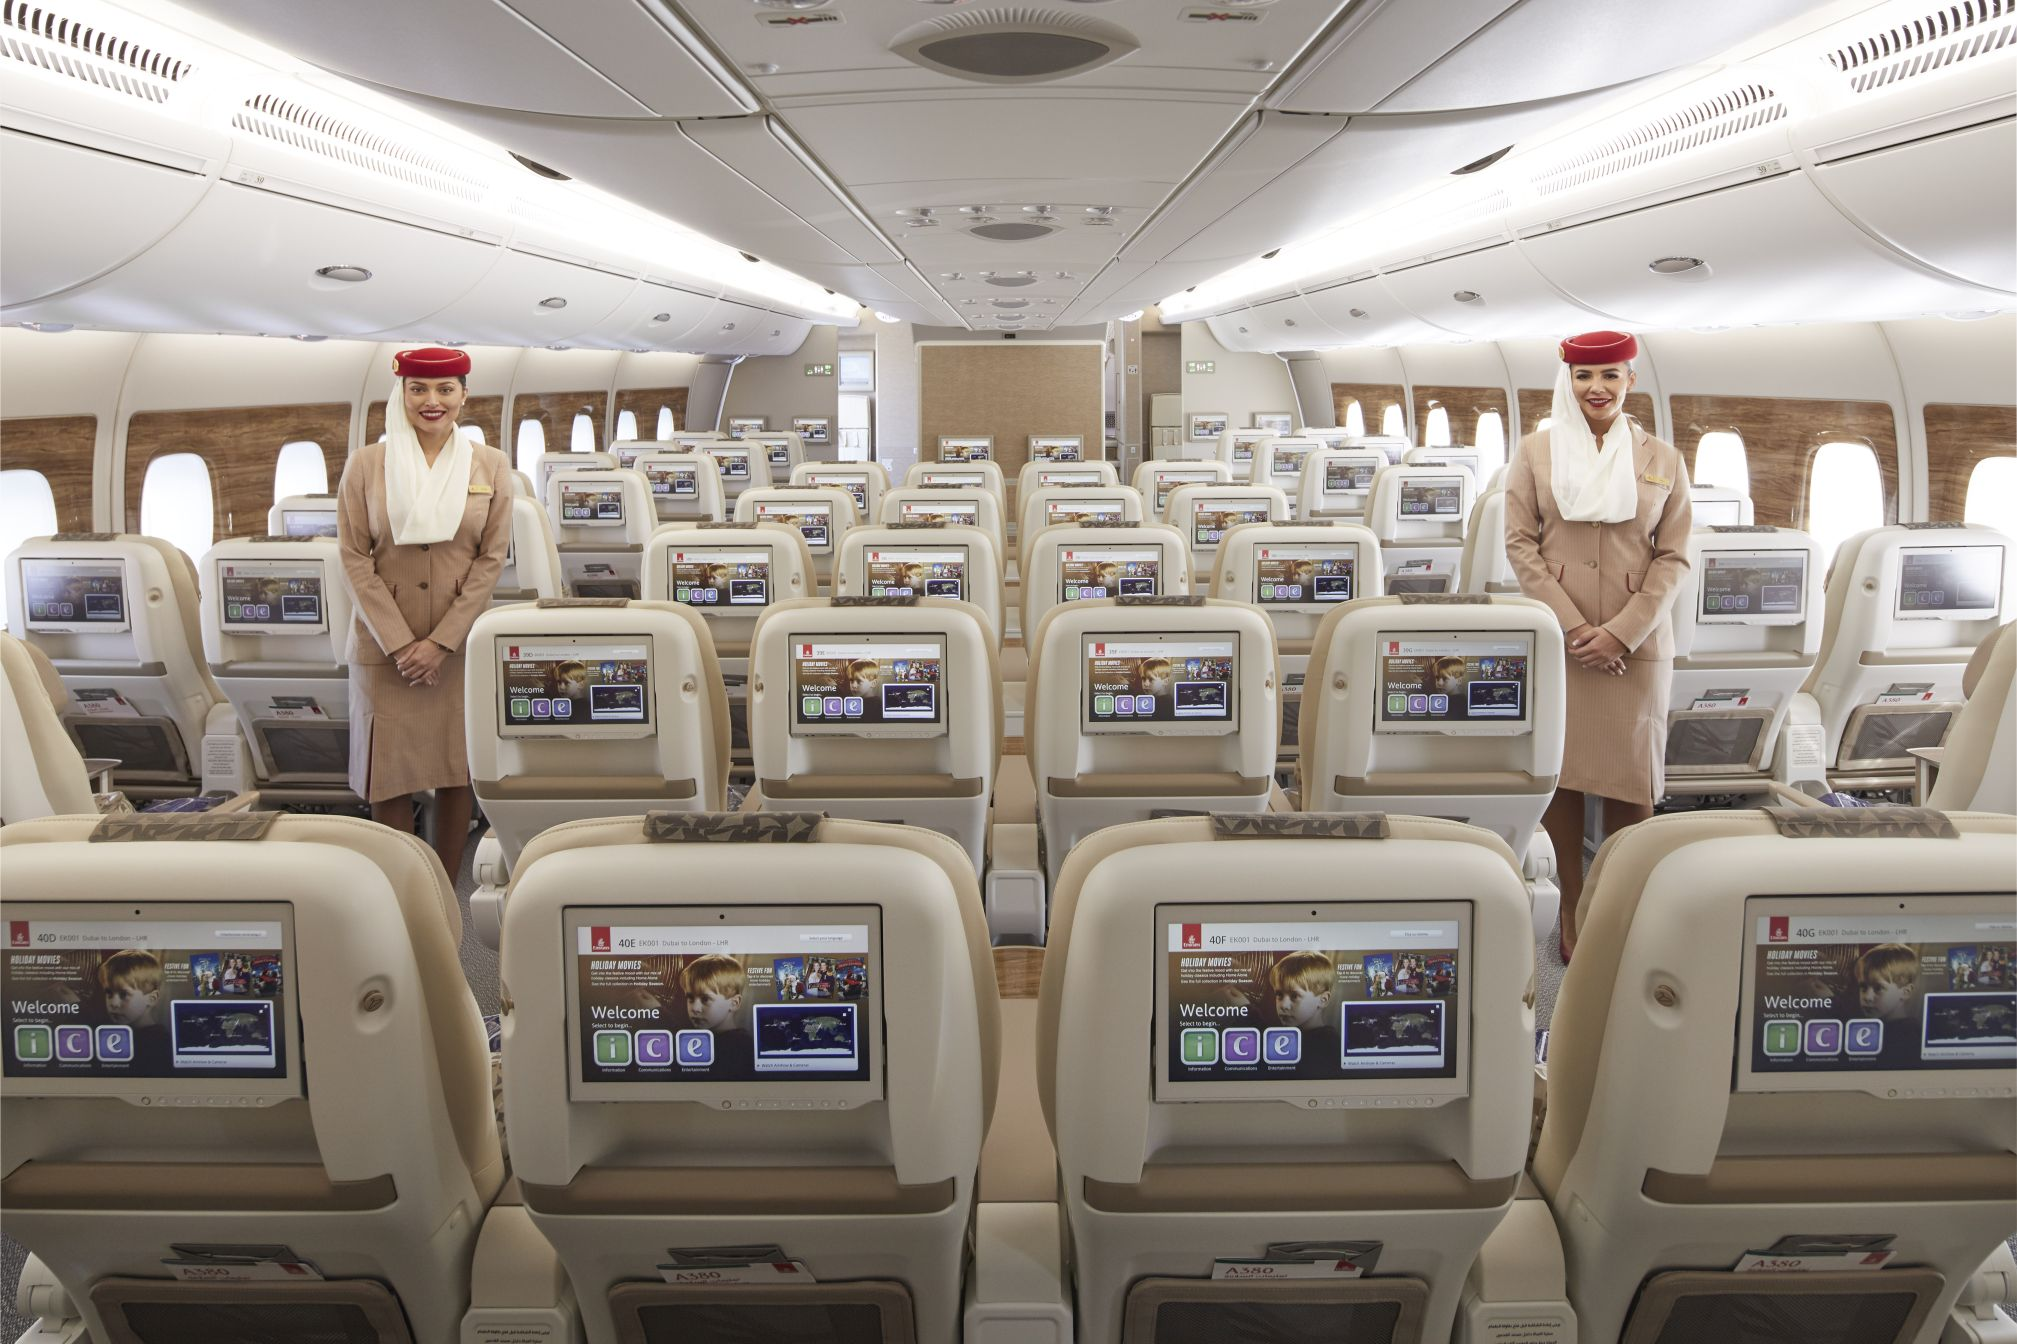 Dubai's Emirates Airlines adds luxurious new premium economy product as part of new enhancements included on its newest A380 aircraft.